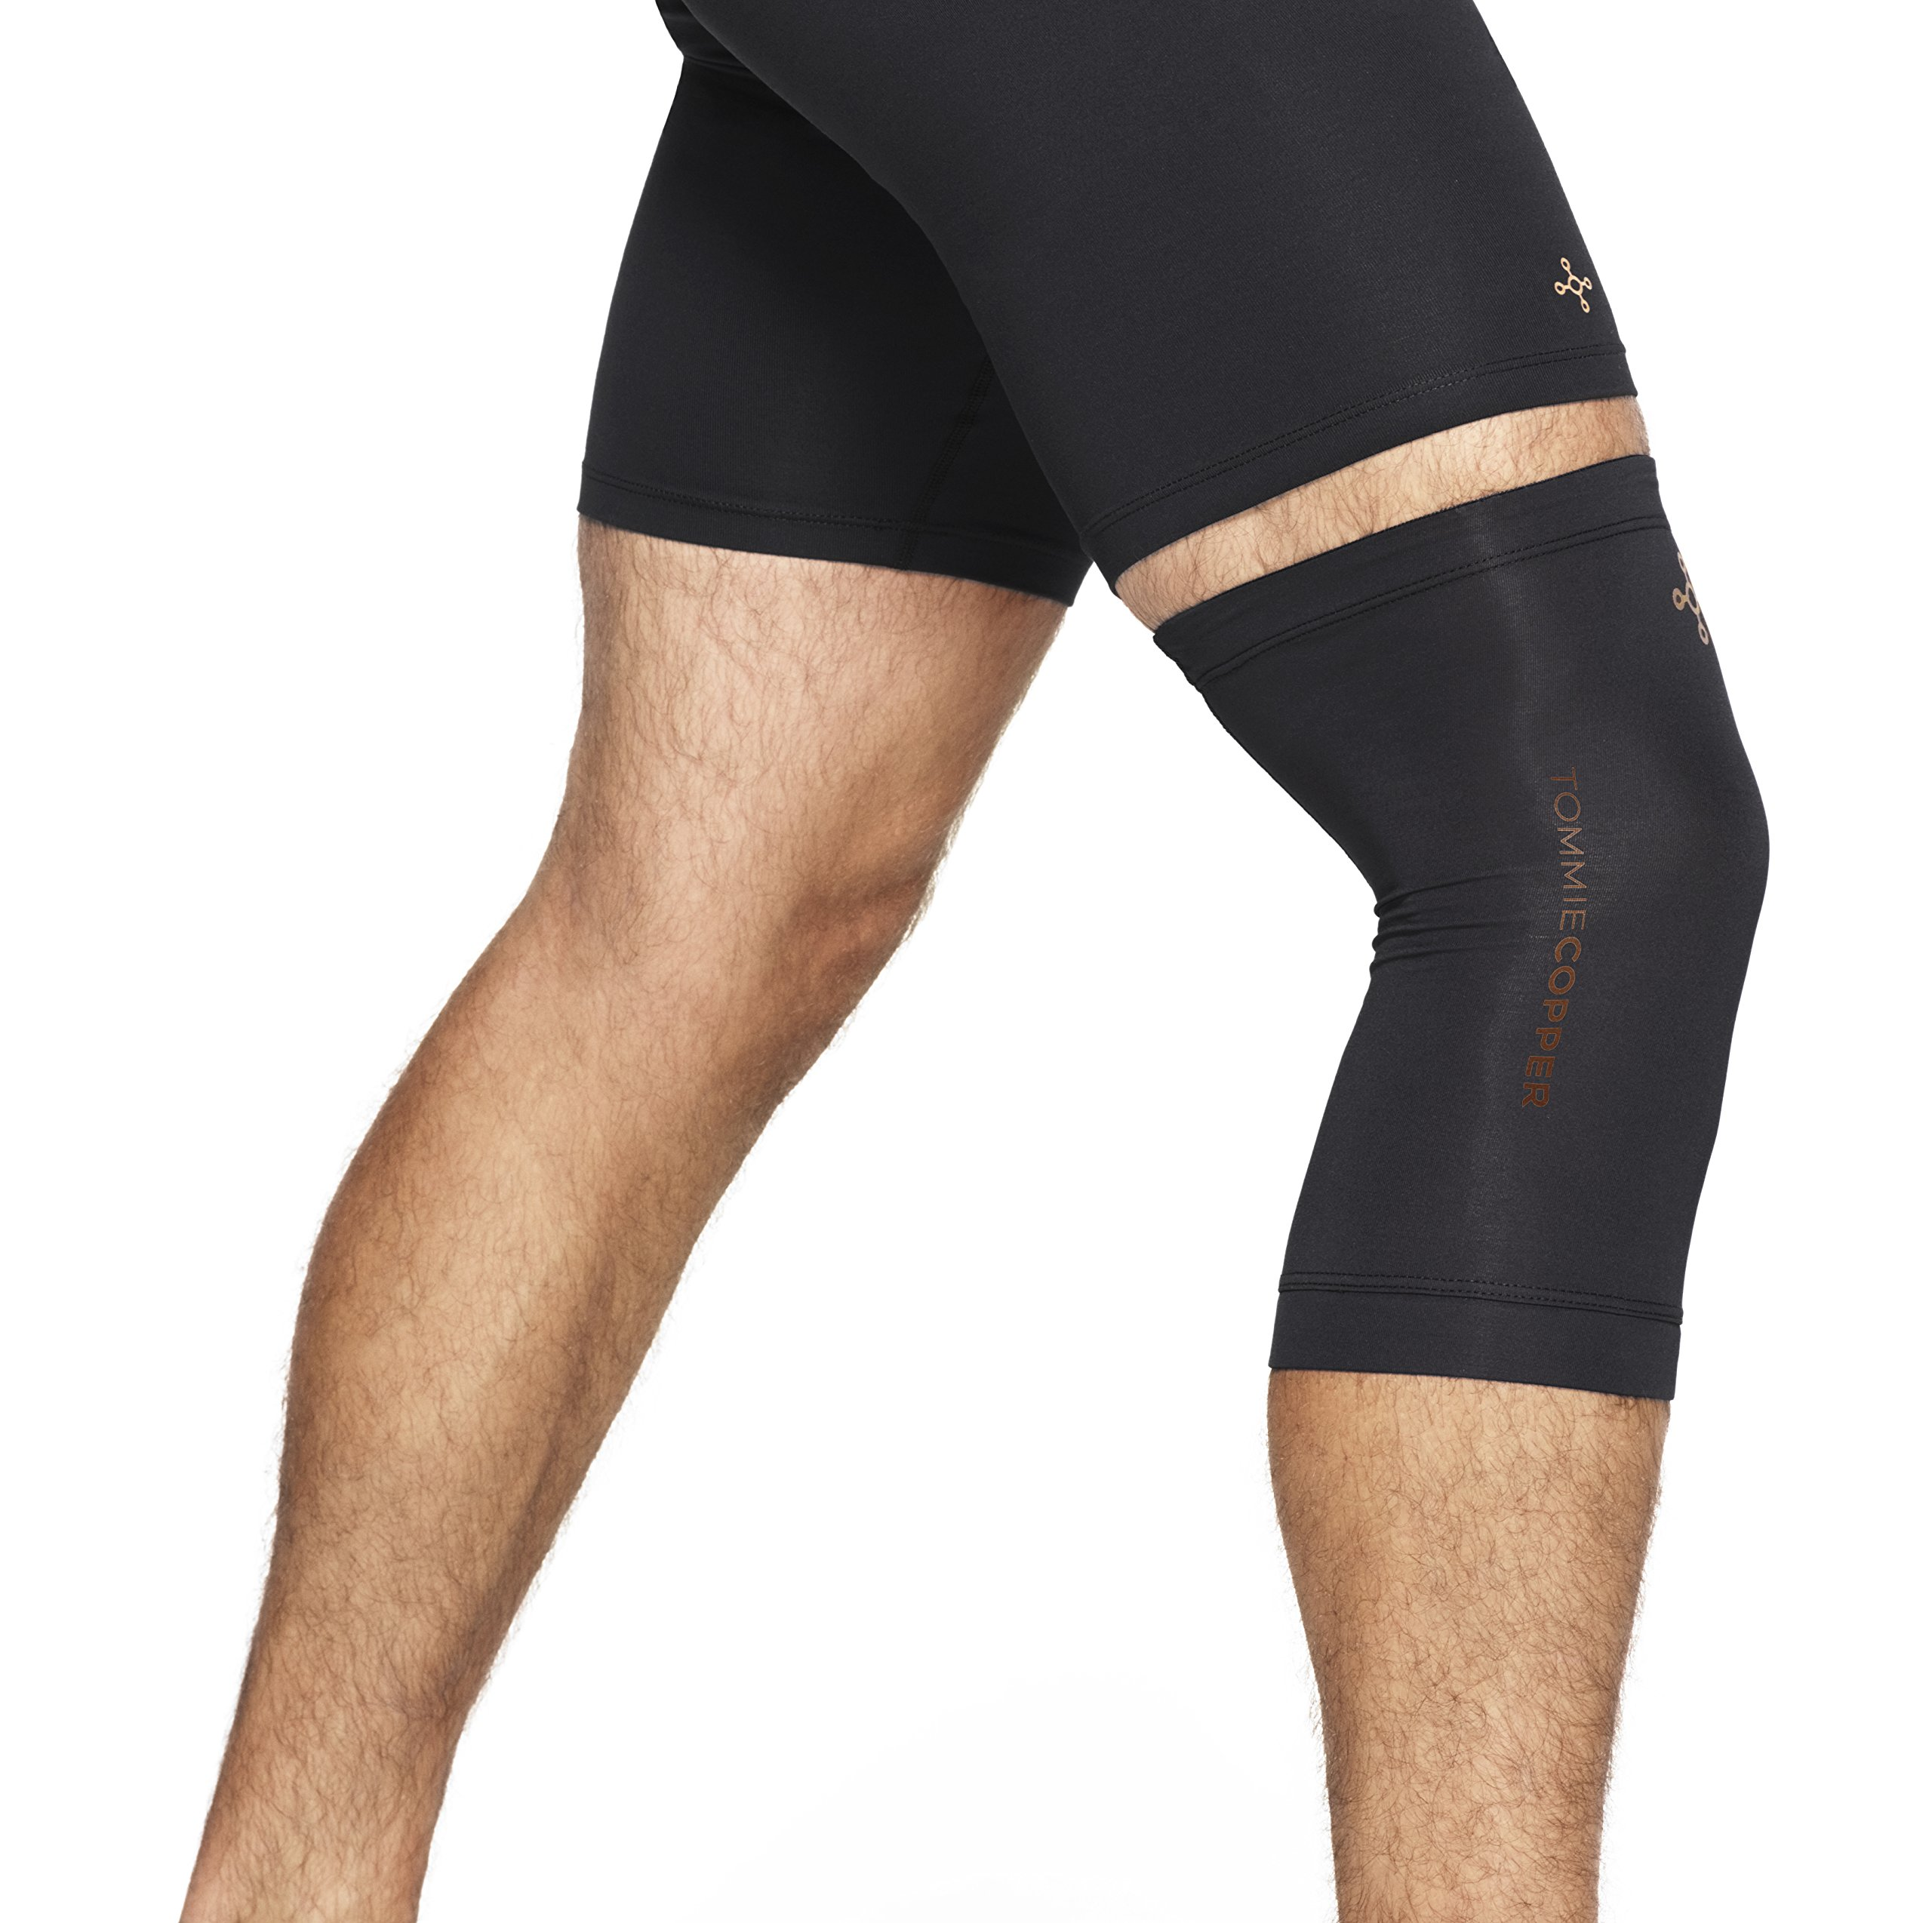 Tommie Copper - Unisex Compression Knee Sleeve - Black - Medium by Tommie Copper